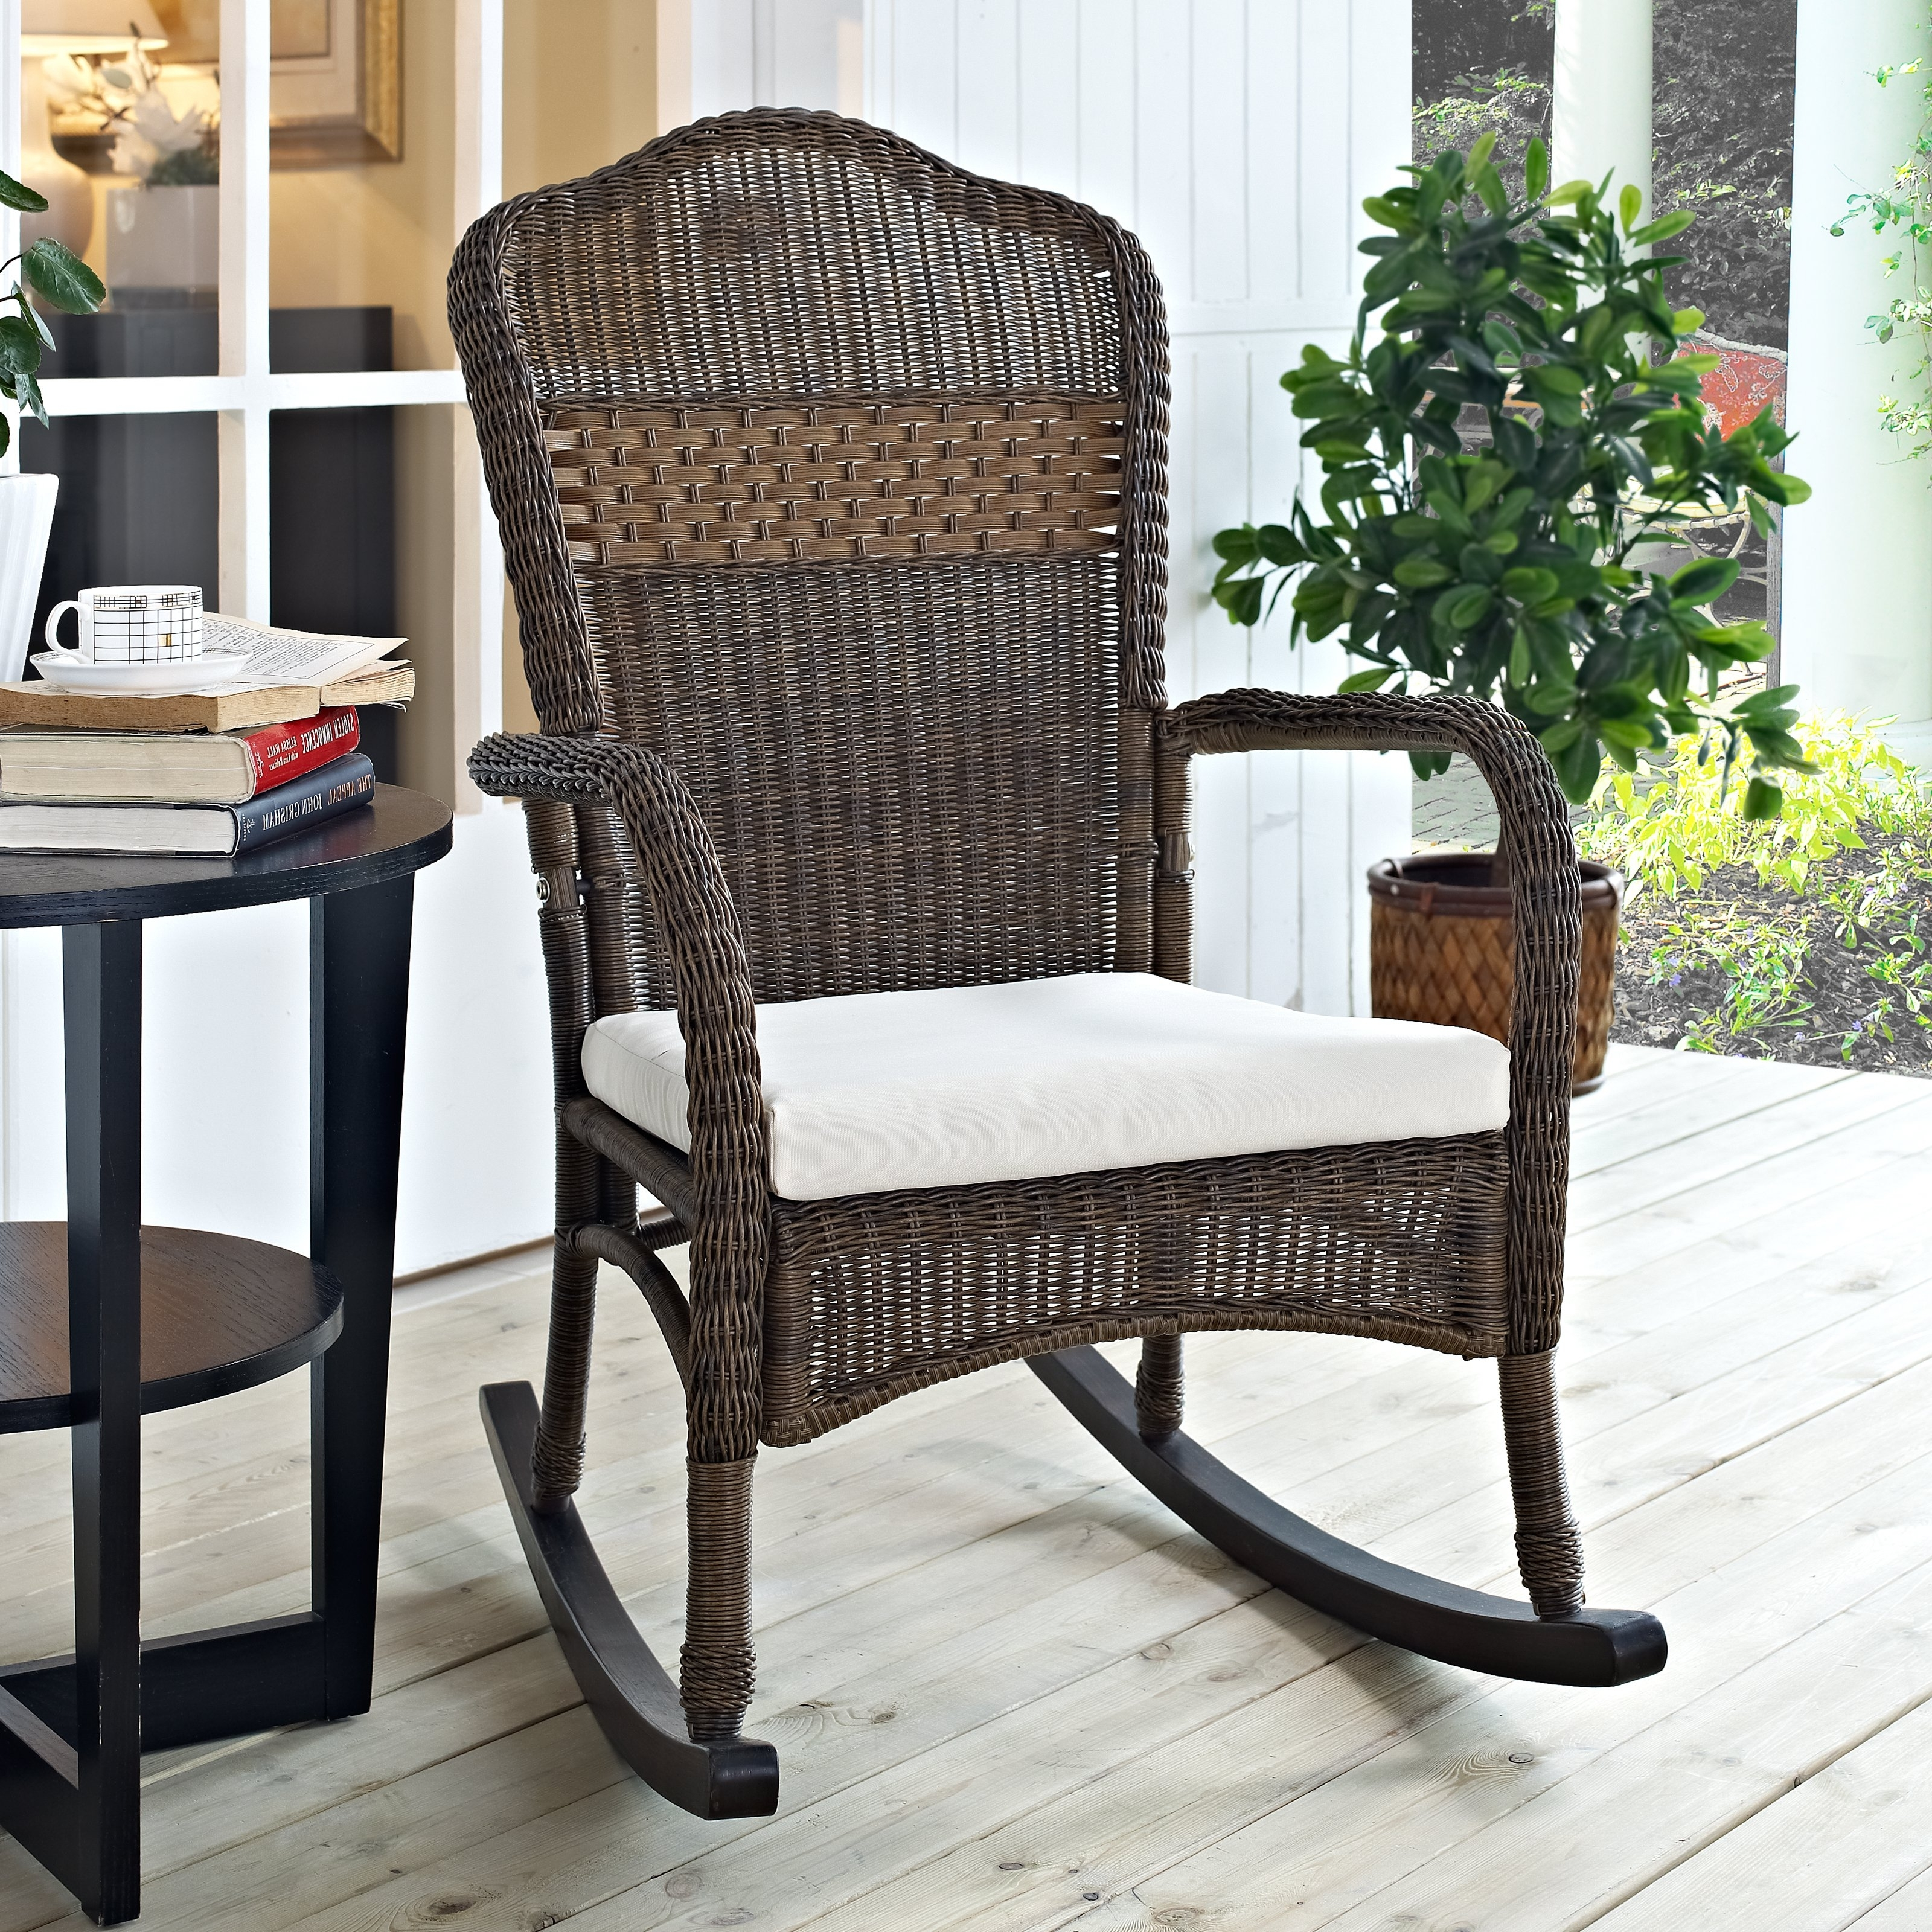 Fashionable Coral Coast Mocha Resin Wicker Rocking Chair With Beige Cushion In Rocking Chairs With Cushions (View 17 of 20)